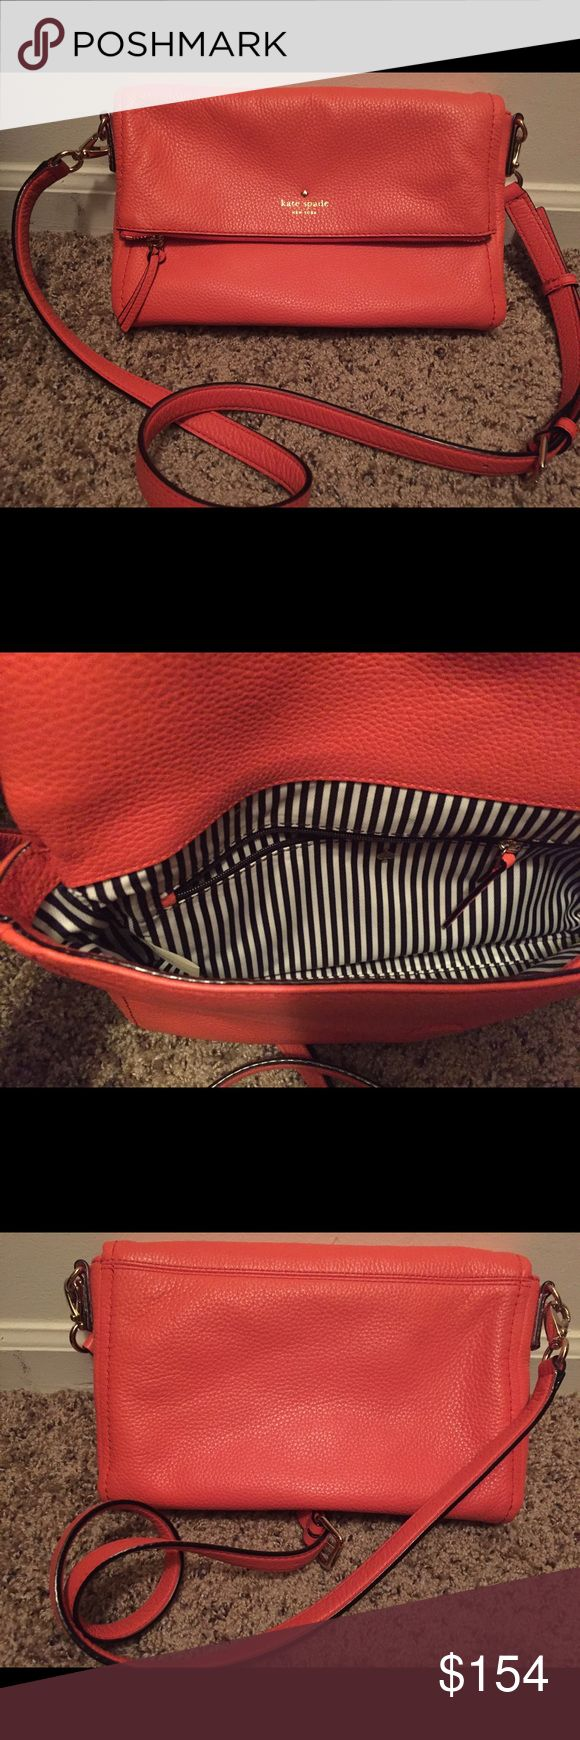 Kate Spade New York Cobble Hill Marsala Kate Spade New York Cobble Hill Marsala in Bright Papaya. Excellent condition! Barely worn, just a little too bright for me. Goes with so much year round! Comes with dust bag. Purchased from Kate Spade online. kate spade Bags Crossbody Bags